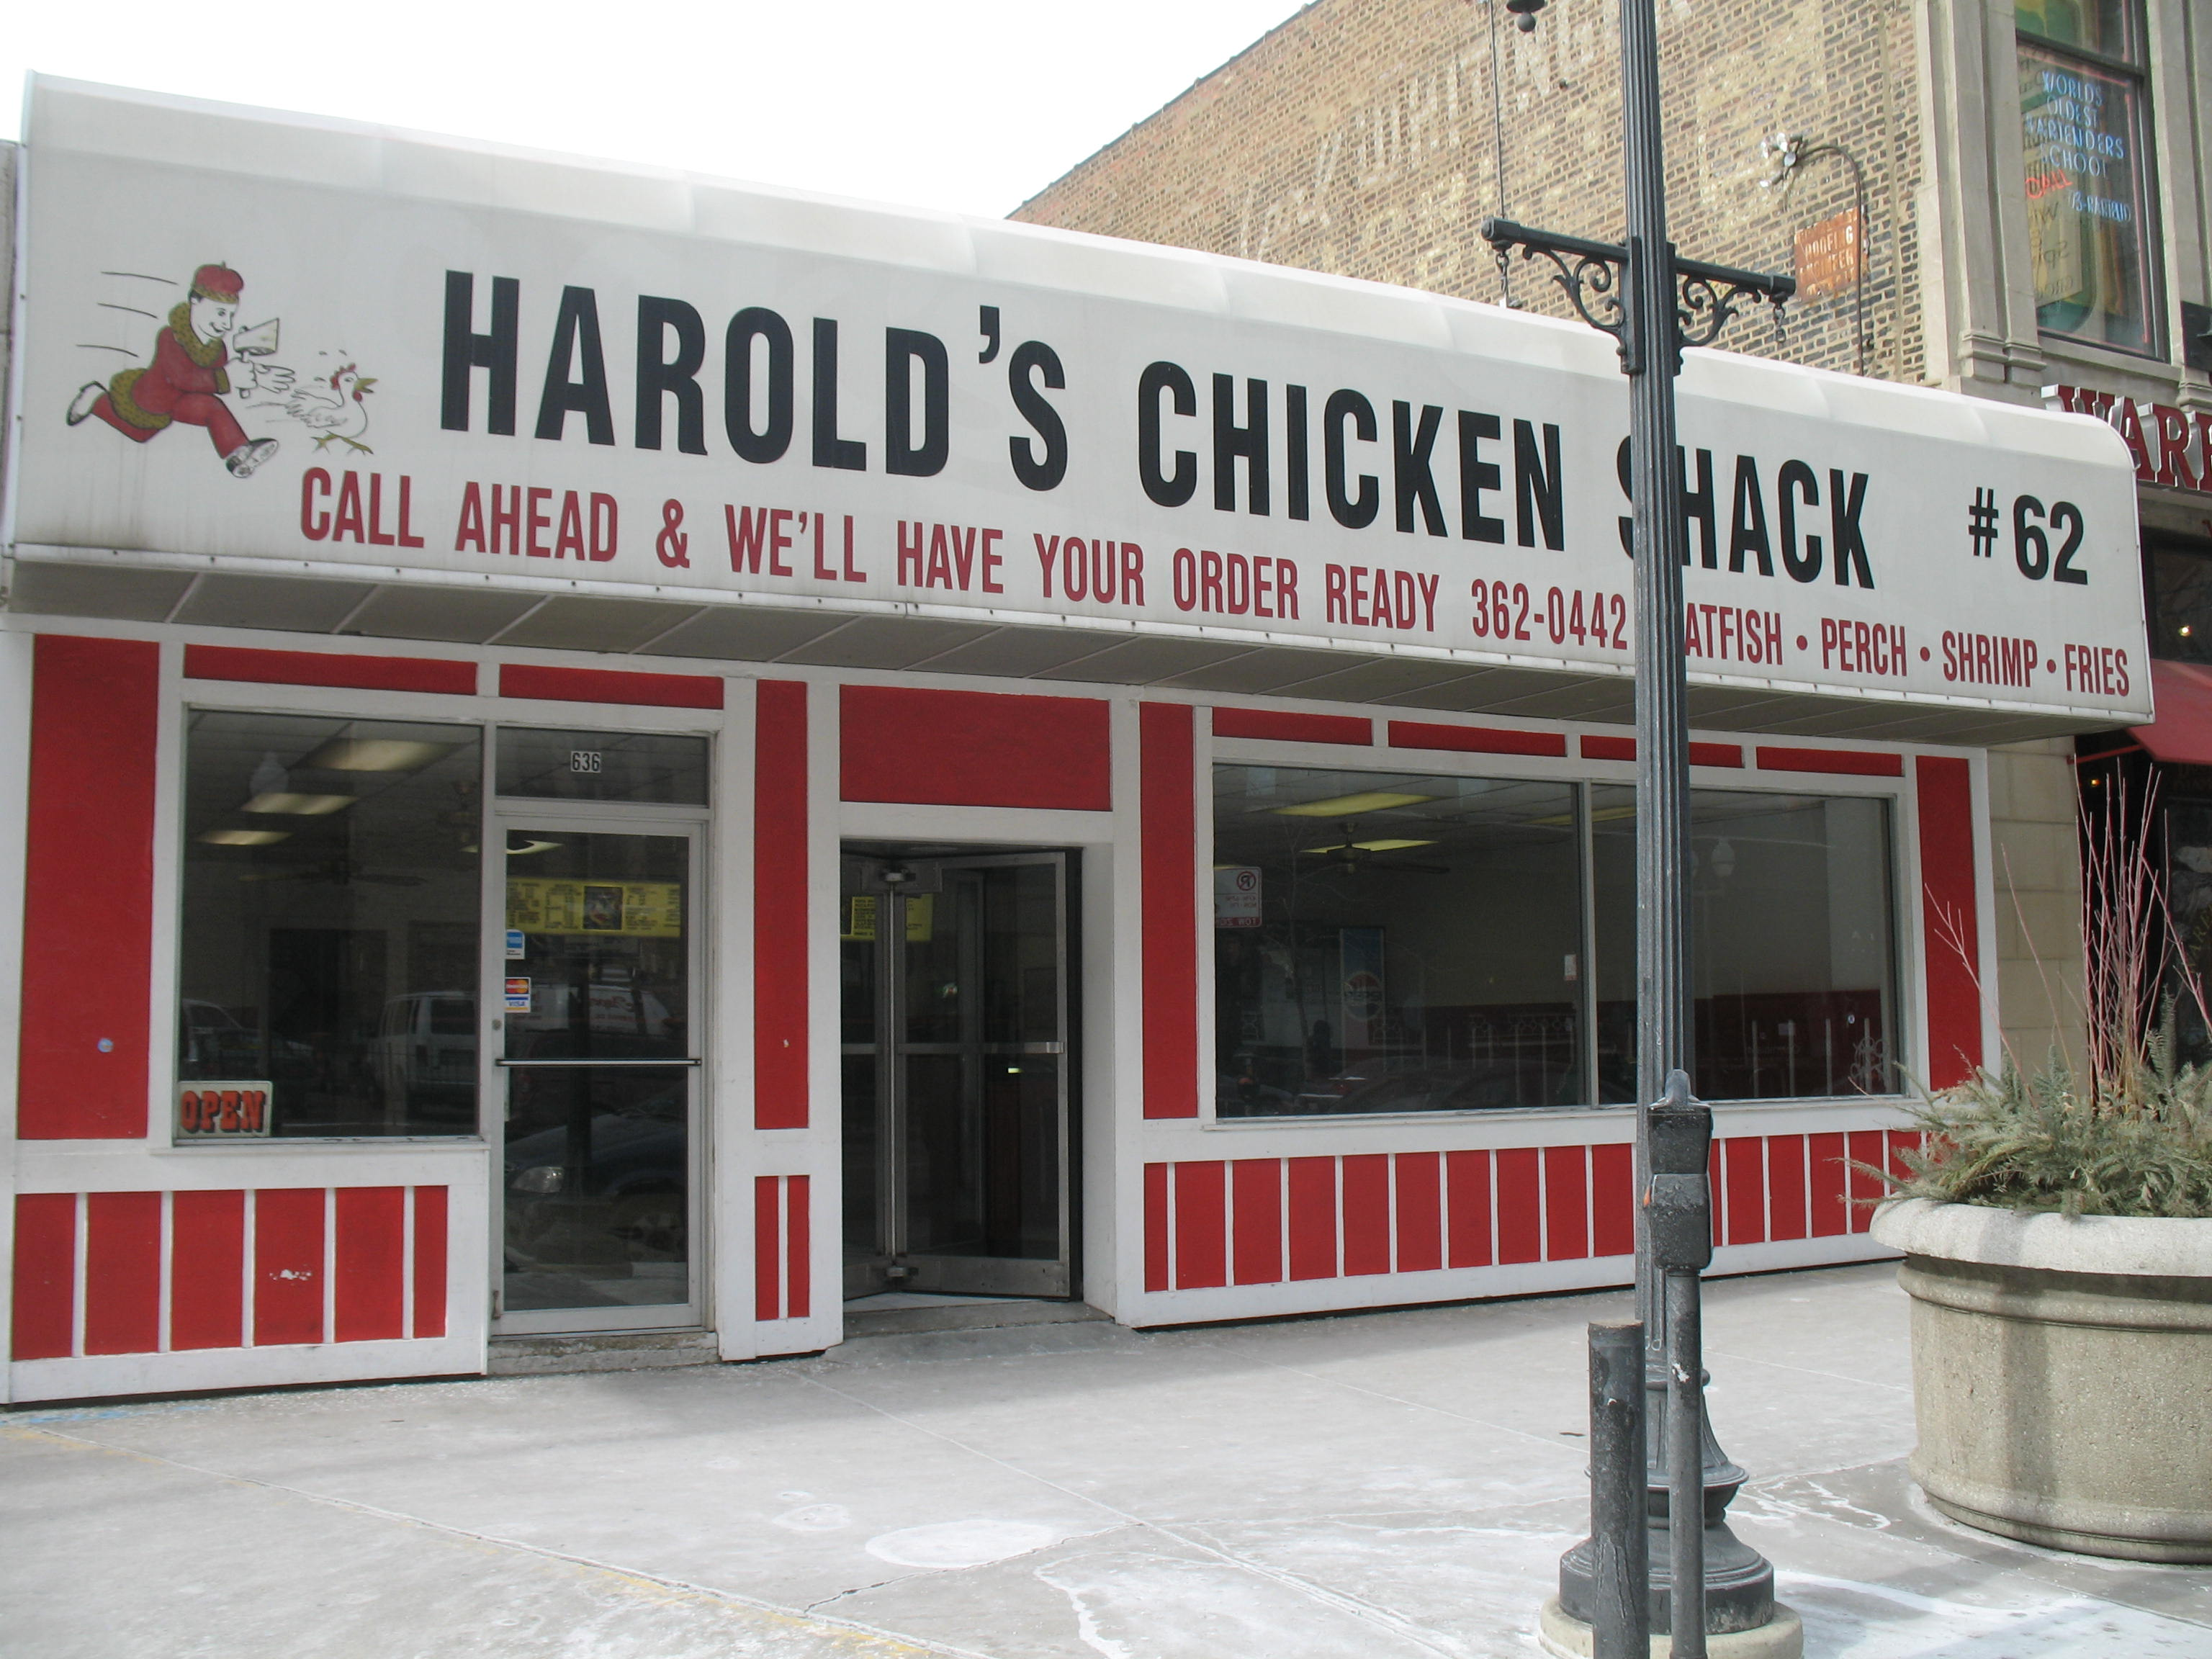 File:20070131 Harold's Chicken Shack 2.JPG - Wikipedia, the free ...